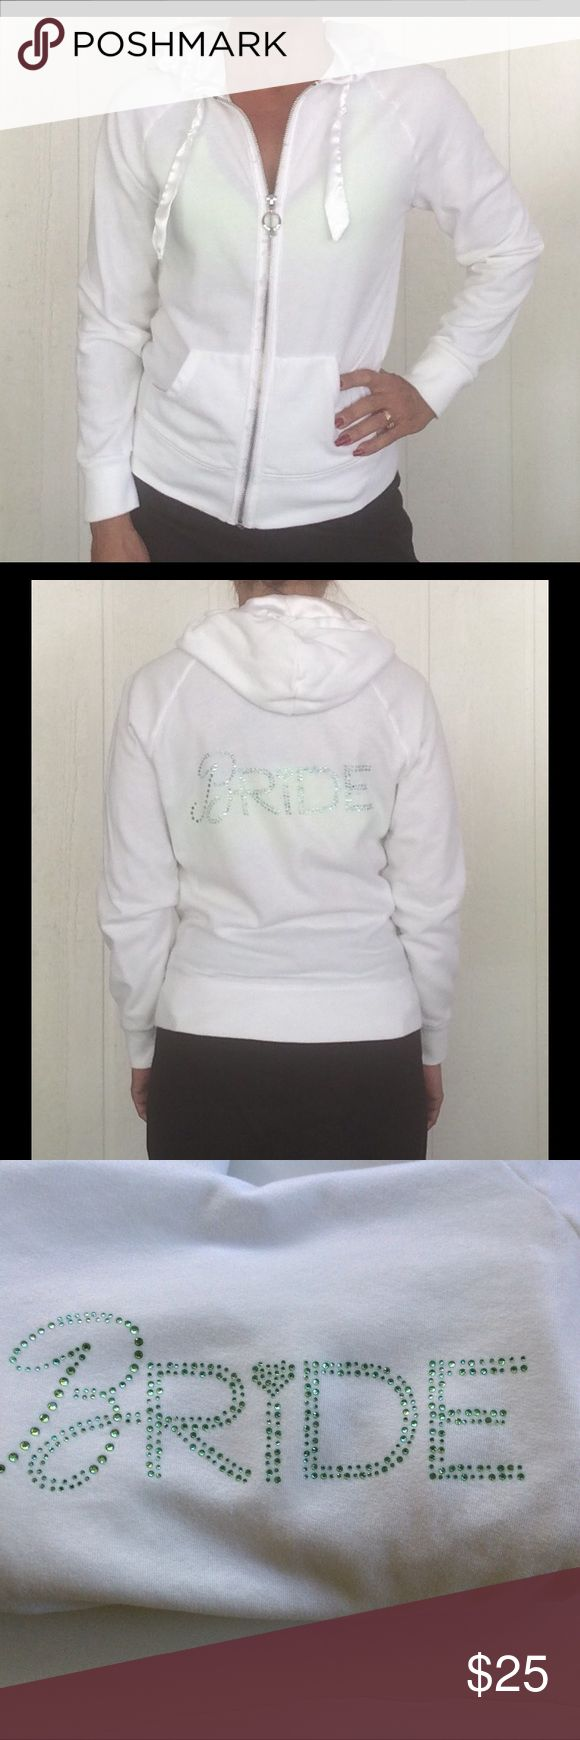 """VICTORIAS SECRET BRIDAL HOODIE EUC Victoria's Secret """"I Do"""" bridal collection hoodie.  Zip up hoodie embellished with blue rhinestones on The back that spells out bride.  this is the perfect accessory that every bride needs while getting glammed up for your wedding!  Zip up with two front pockets.  Hoodie interior is lined with satin and has several pulls but not noticeable.  Satin drawstring on hood.  Adorable wedding ring with crystals for the zipper pull.  No rips, holes, or stains.  No…"""